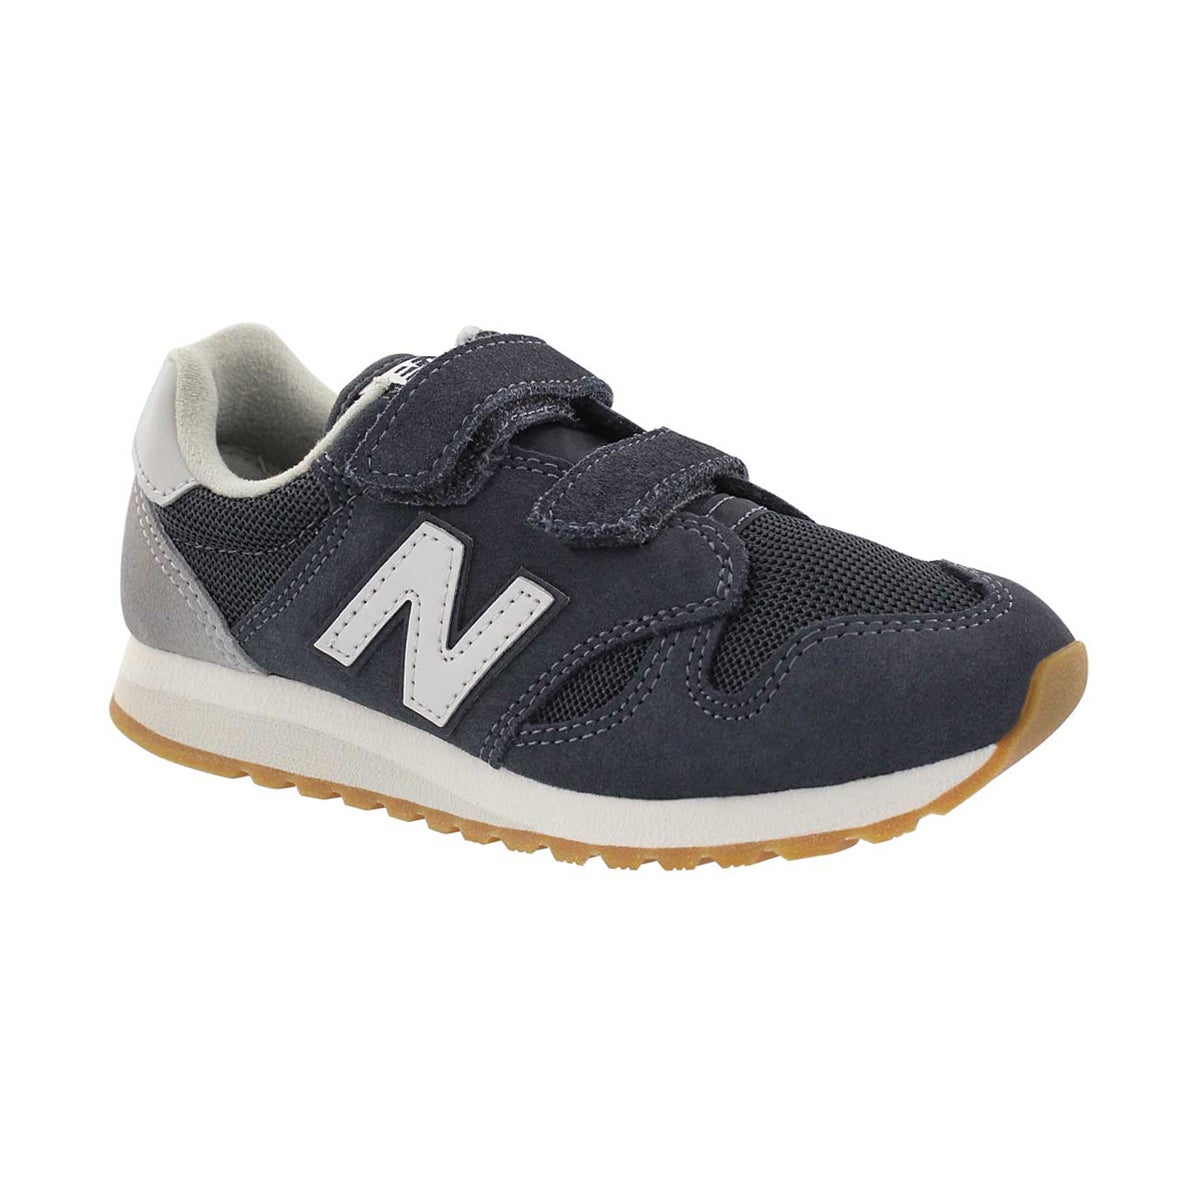 Boys' 520 blue/white sneakers